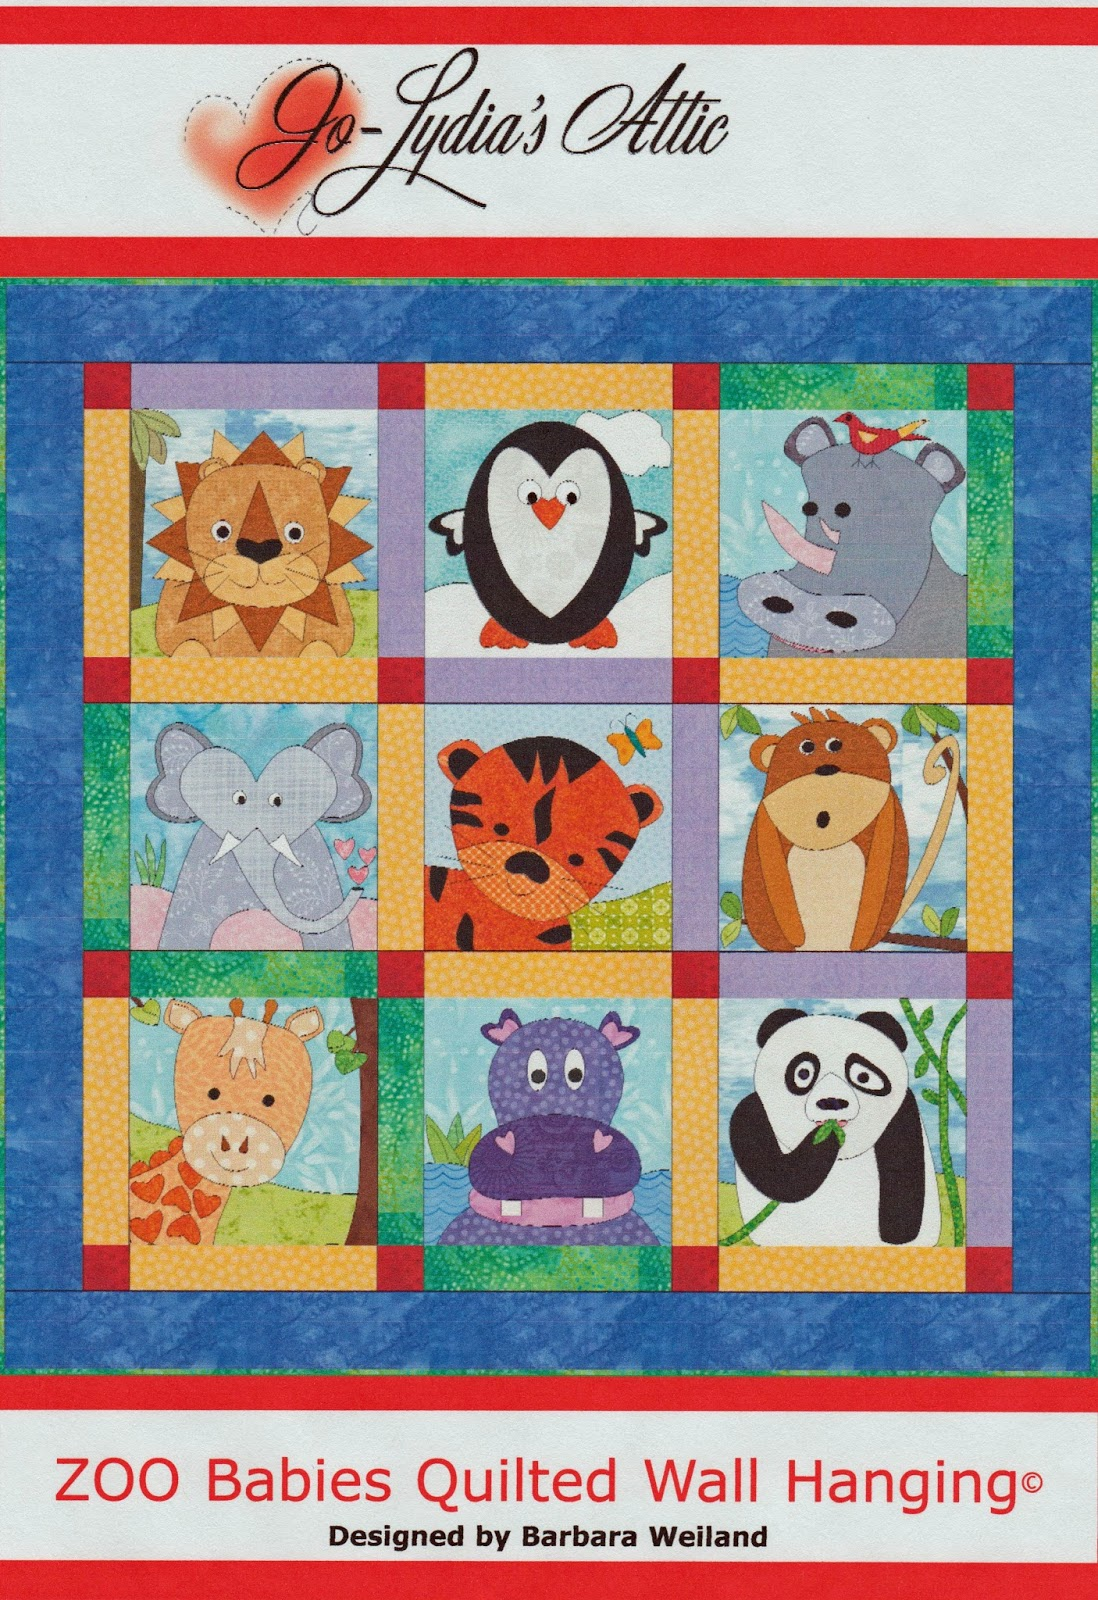 Quilted Wall Hanging Patterns the joy of sewingand quilting, too!: zoo babies quilted wall